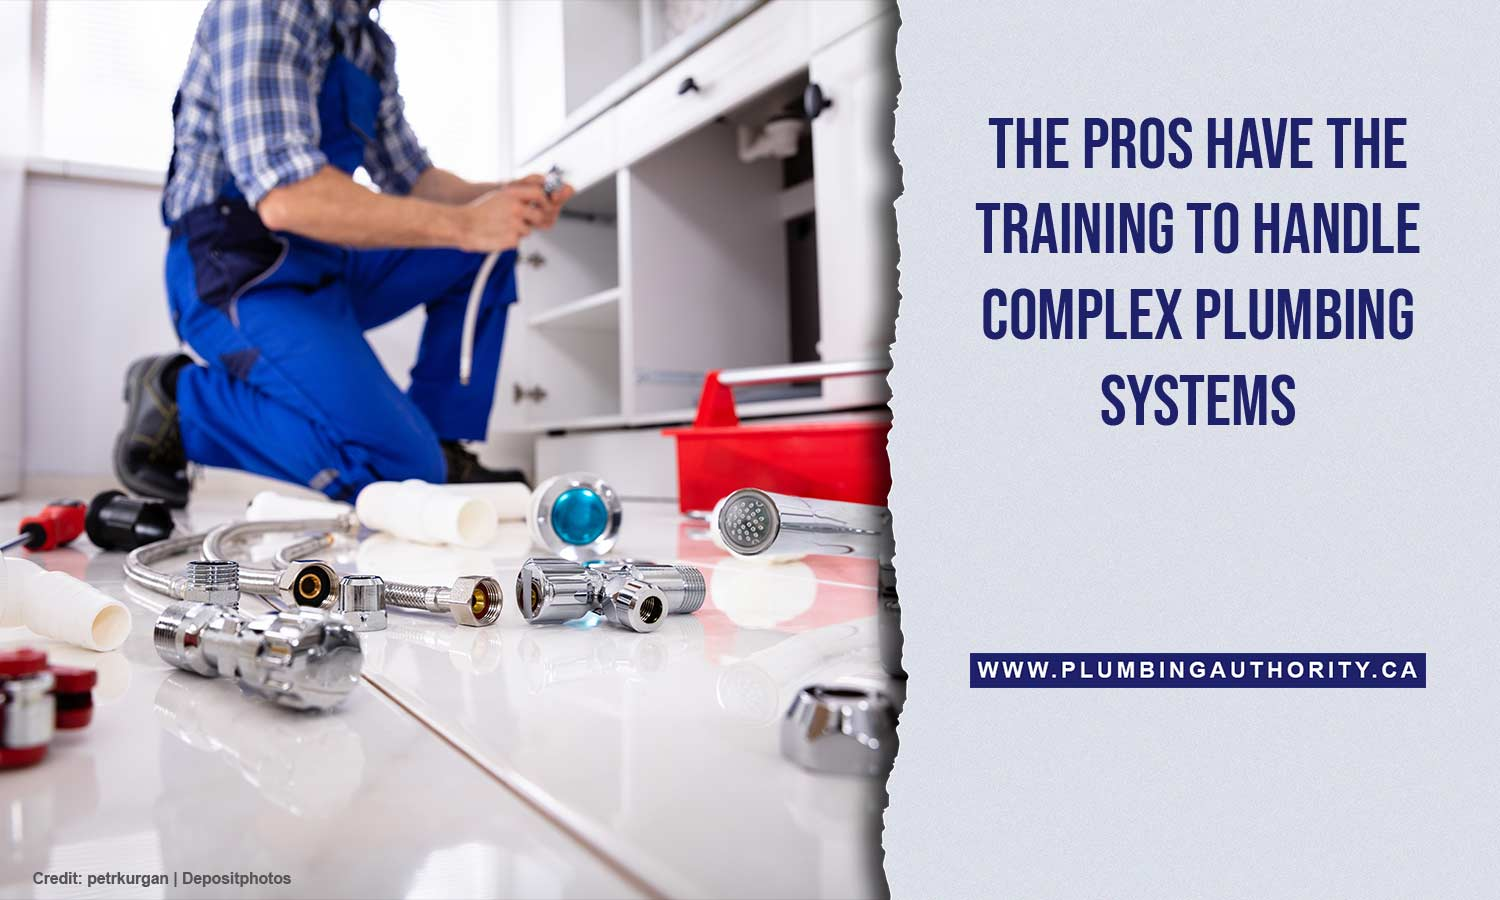 The pros have the training to handle complex